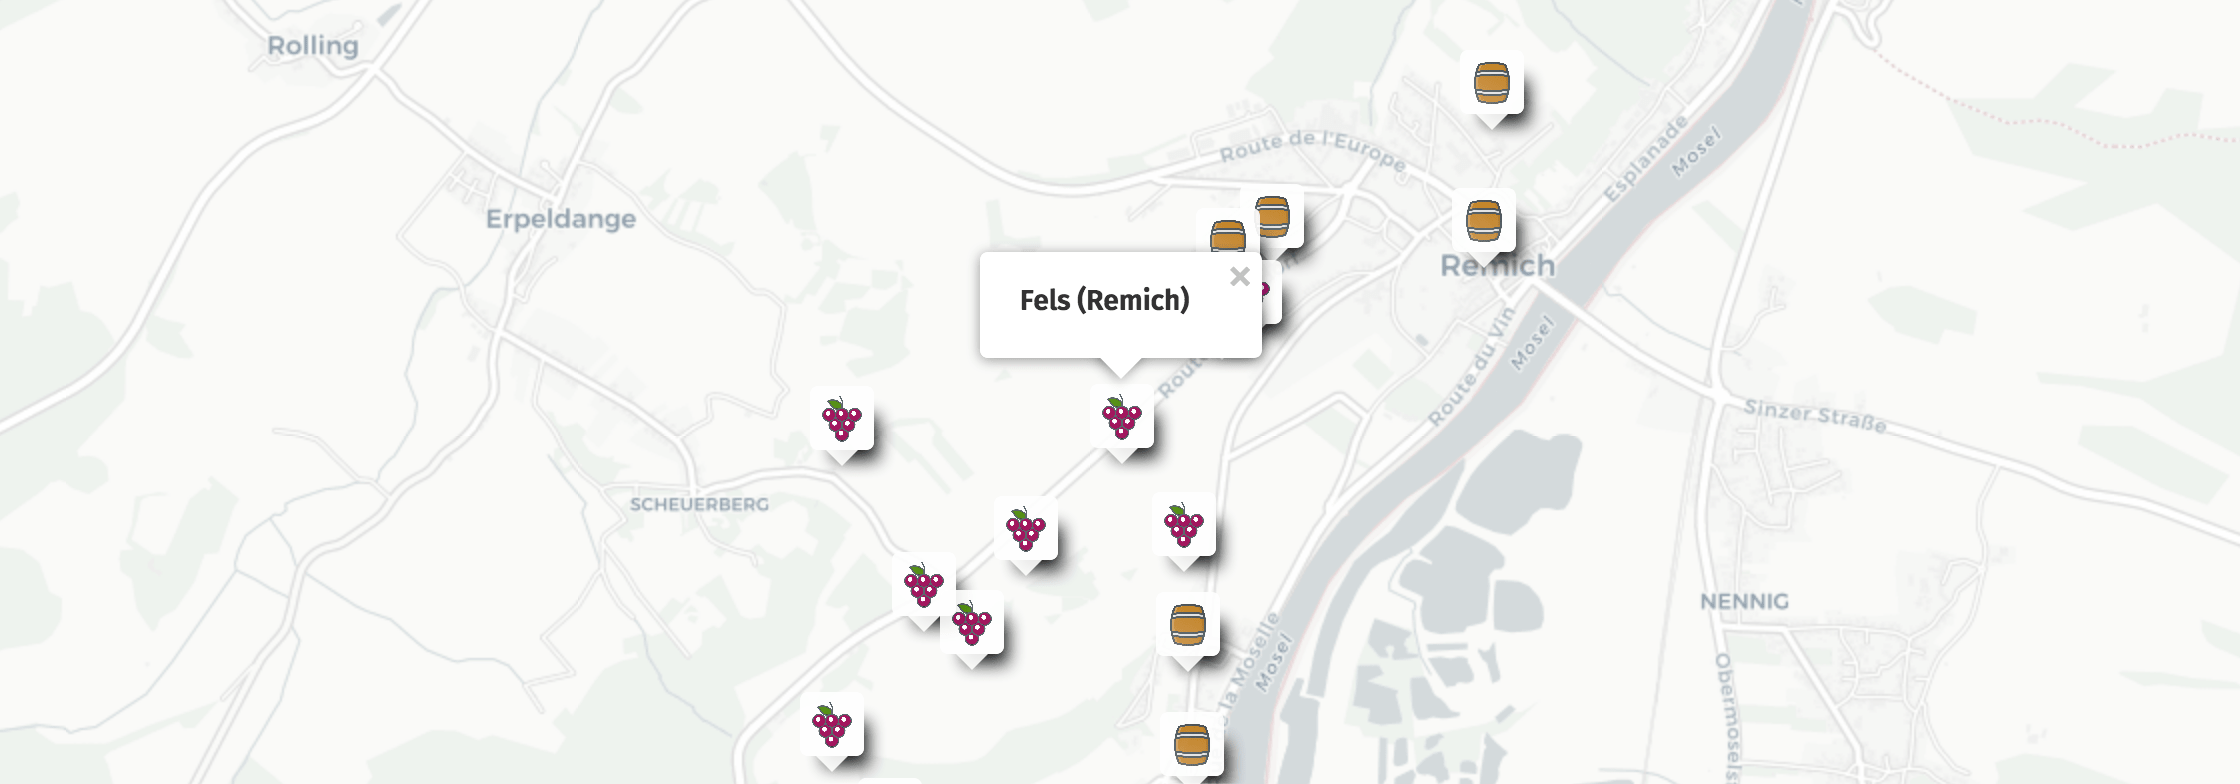 Geolocation of Fels wines in Remich